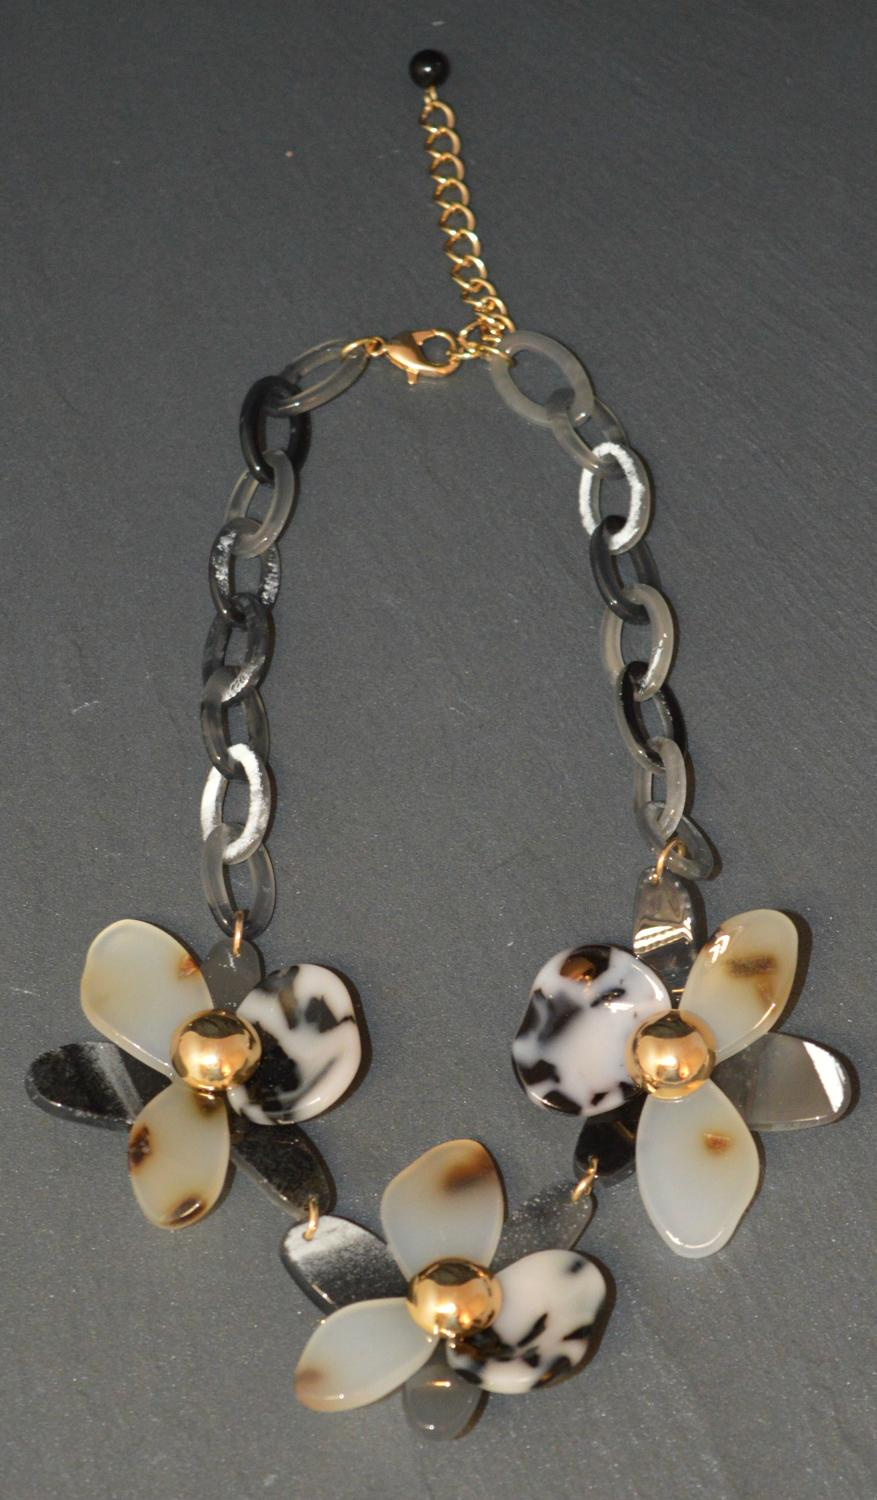 Acrylic Multi Effect Flower Necklace